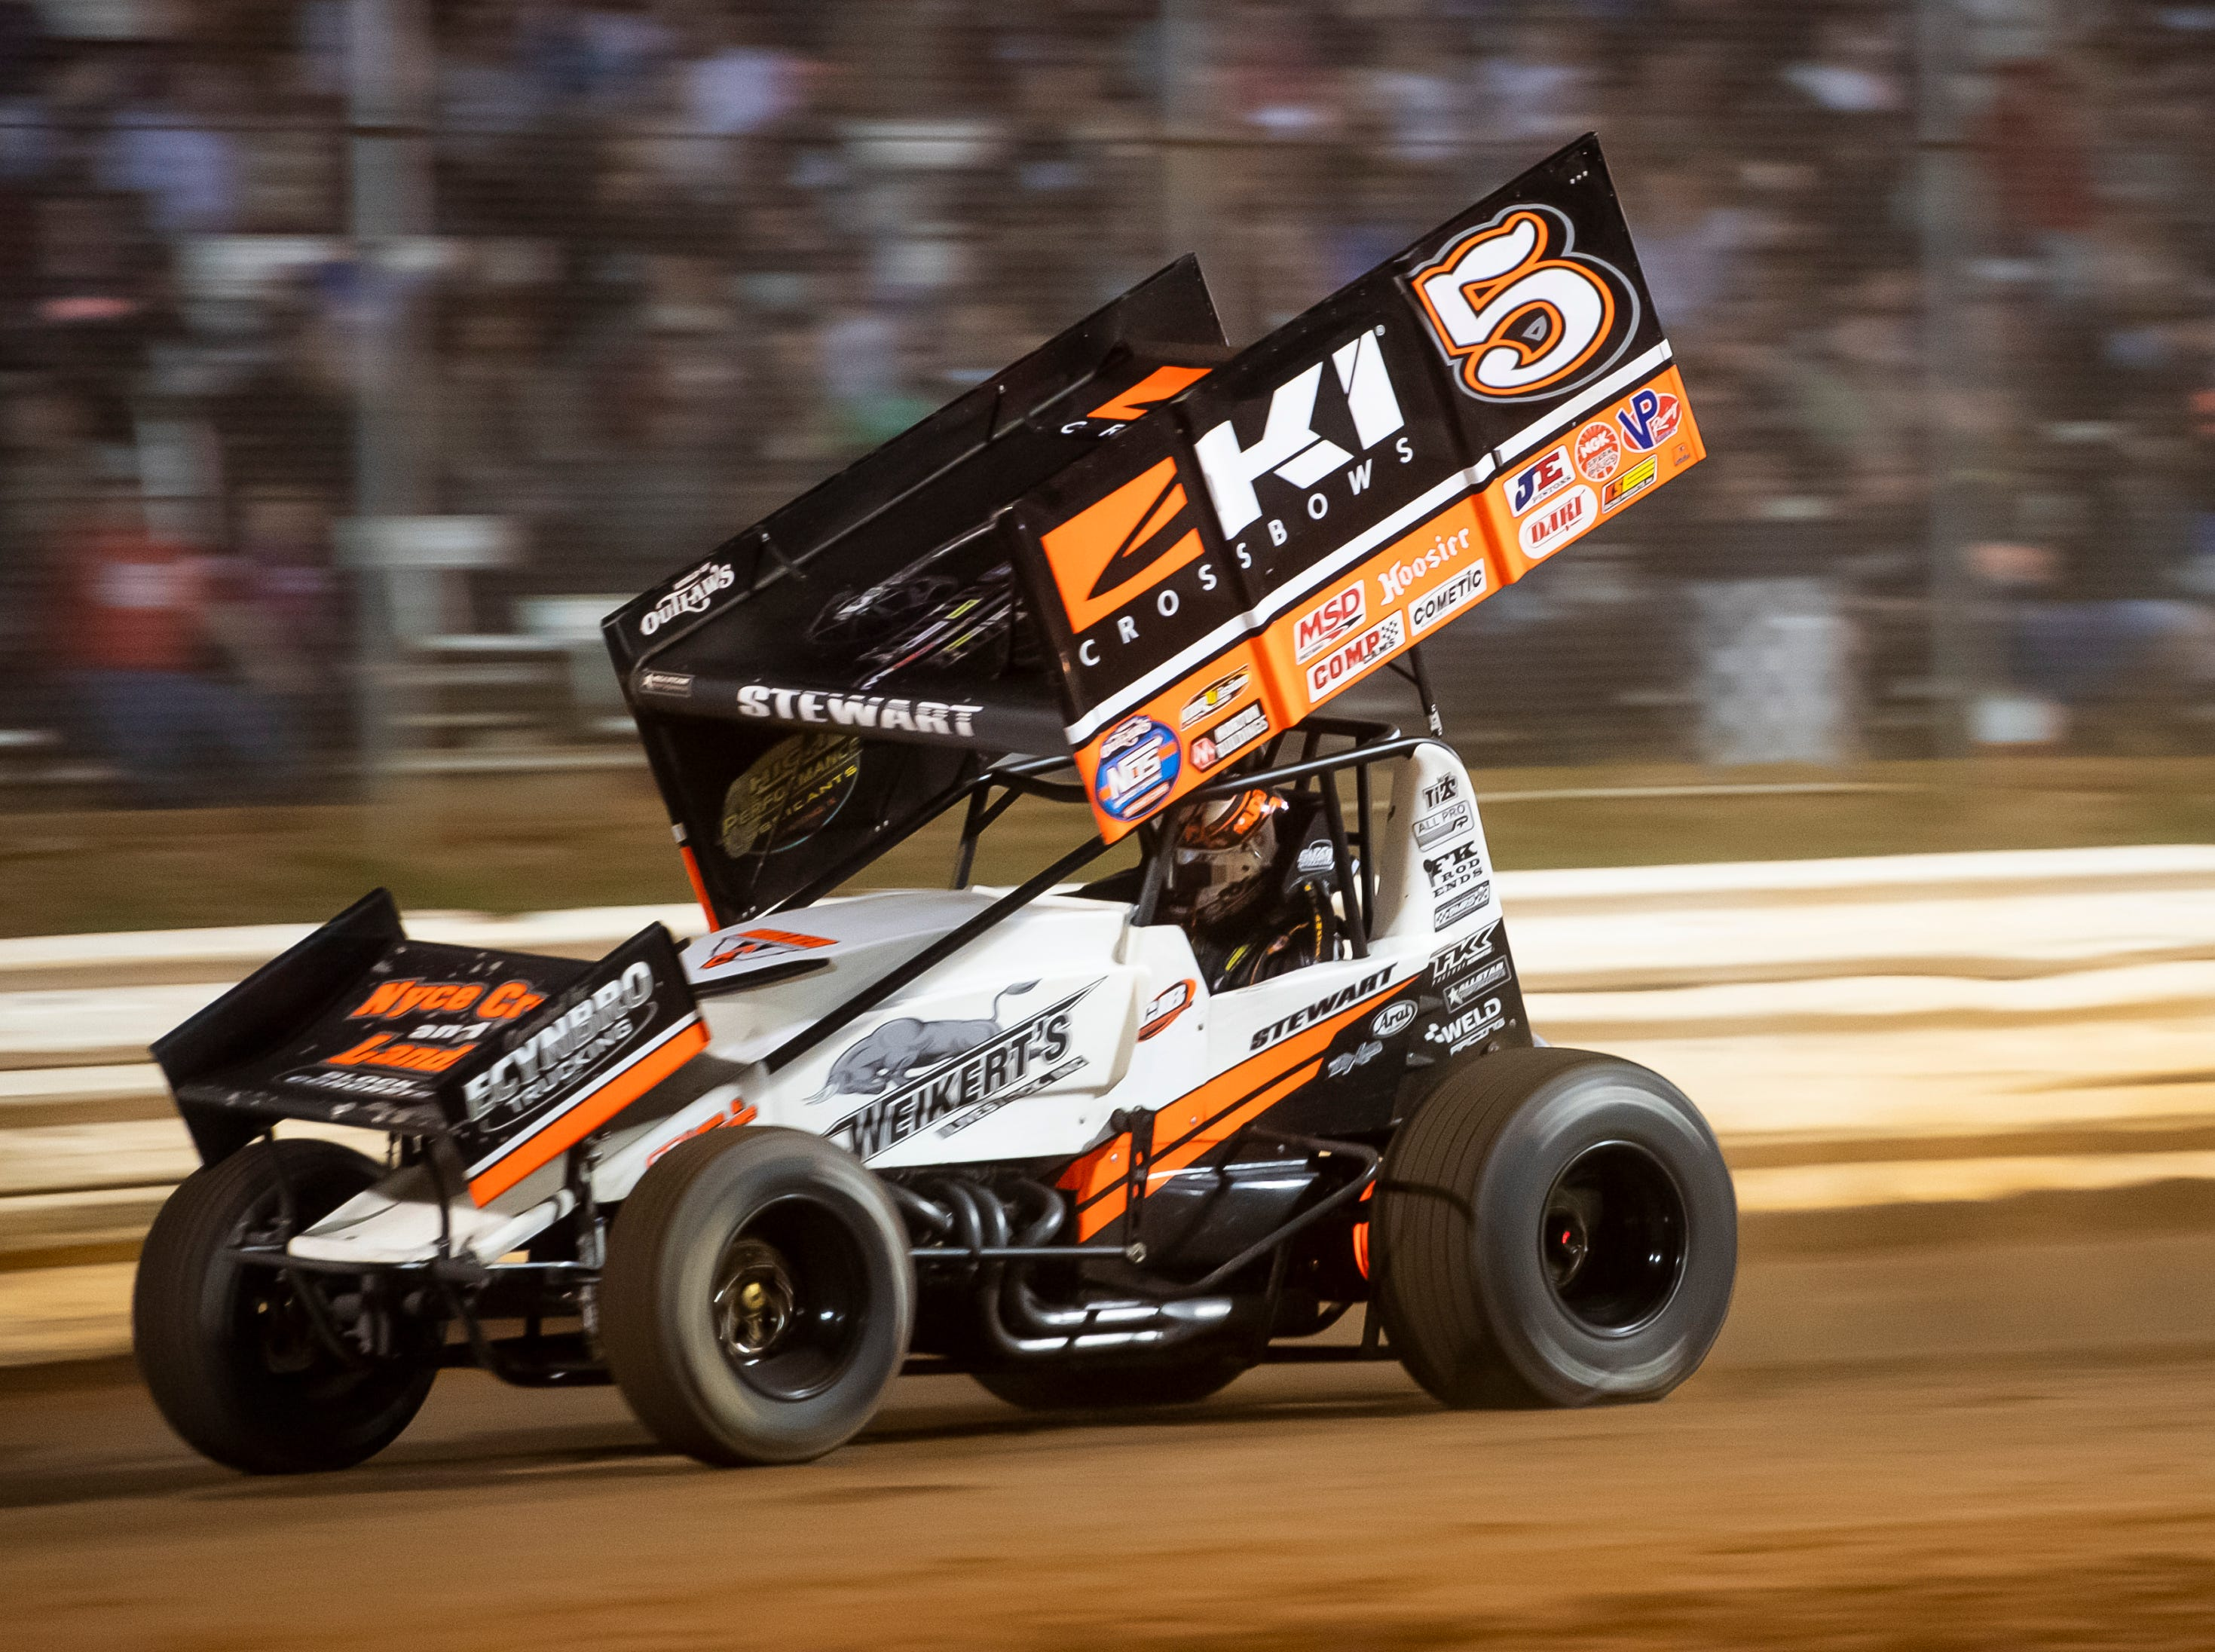 Shane Stewart races in the number five car during the World of Outlaws Gettysburg Clash at Lincoln Speedway in Abbottstown on Wednesday, May 15, 2019.